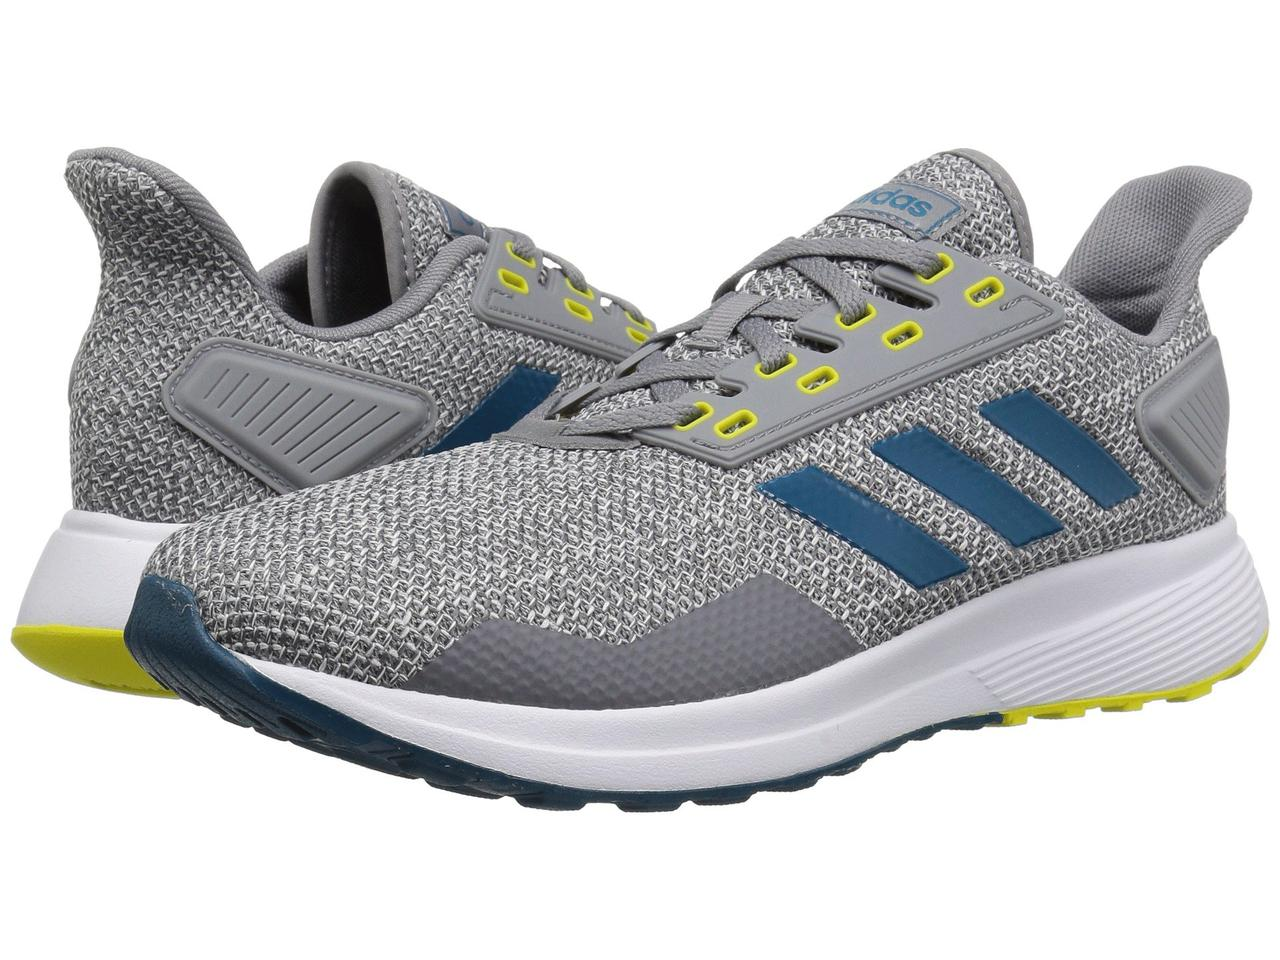 b25c62f5157b Кроссовки Кеды (Оригинал) adidas Running Duramo 9 Grey Real Teal Cloud